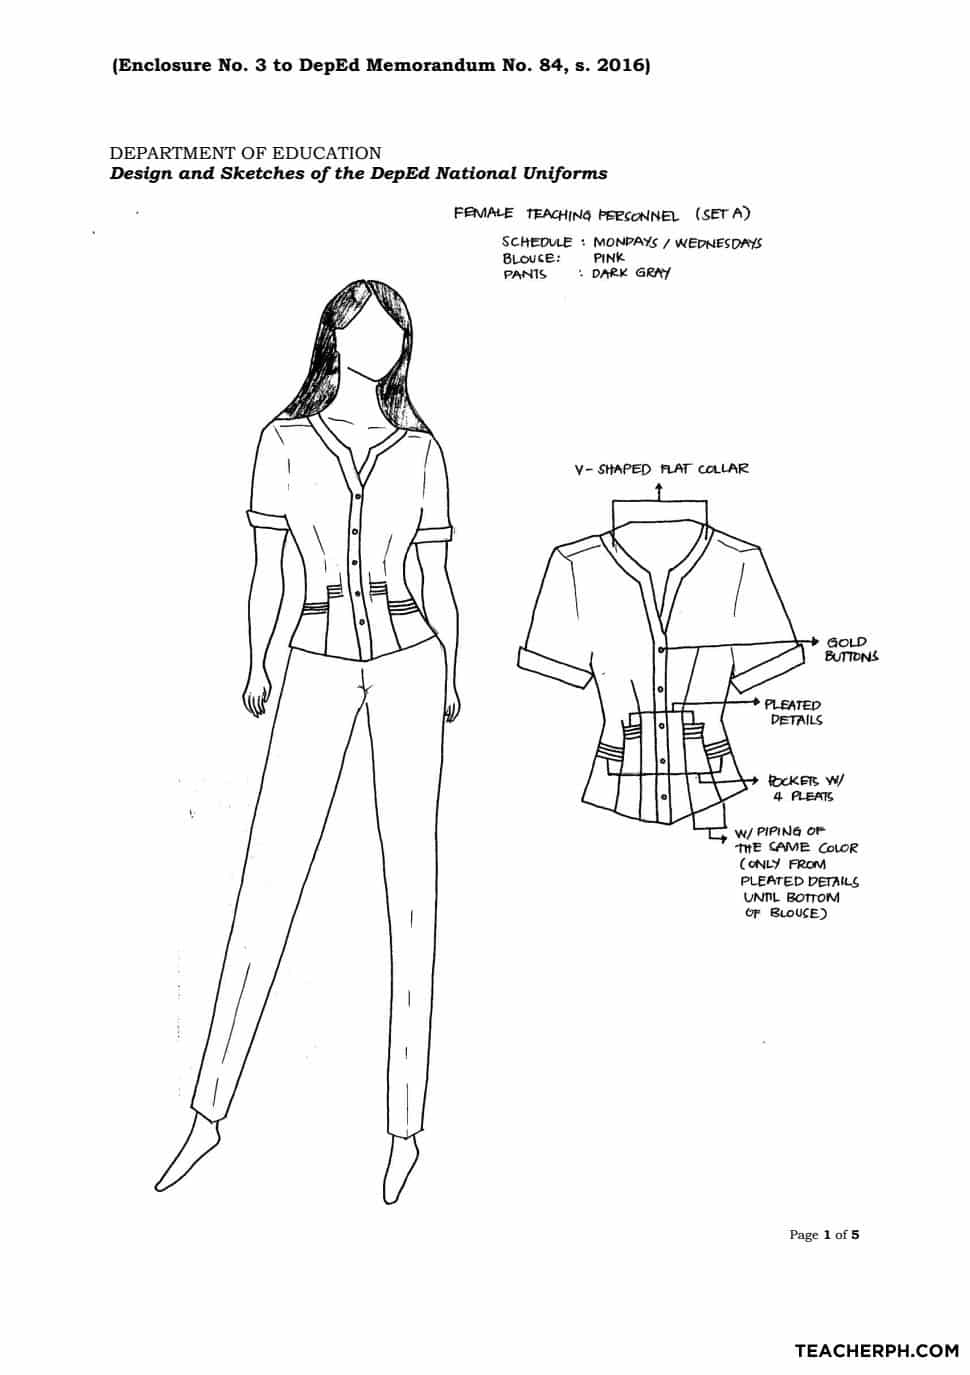 additional guidelines on the deped national uniforms for teaching design and sketches of the 2016 deped national uniforms